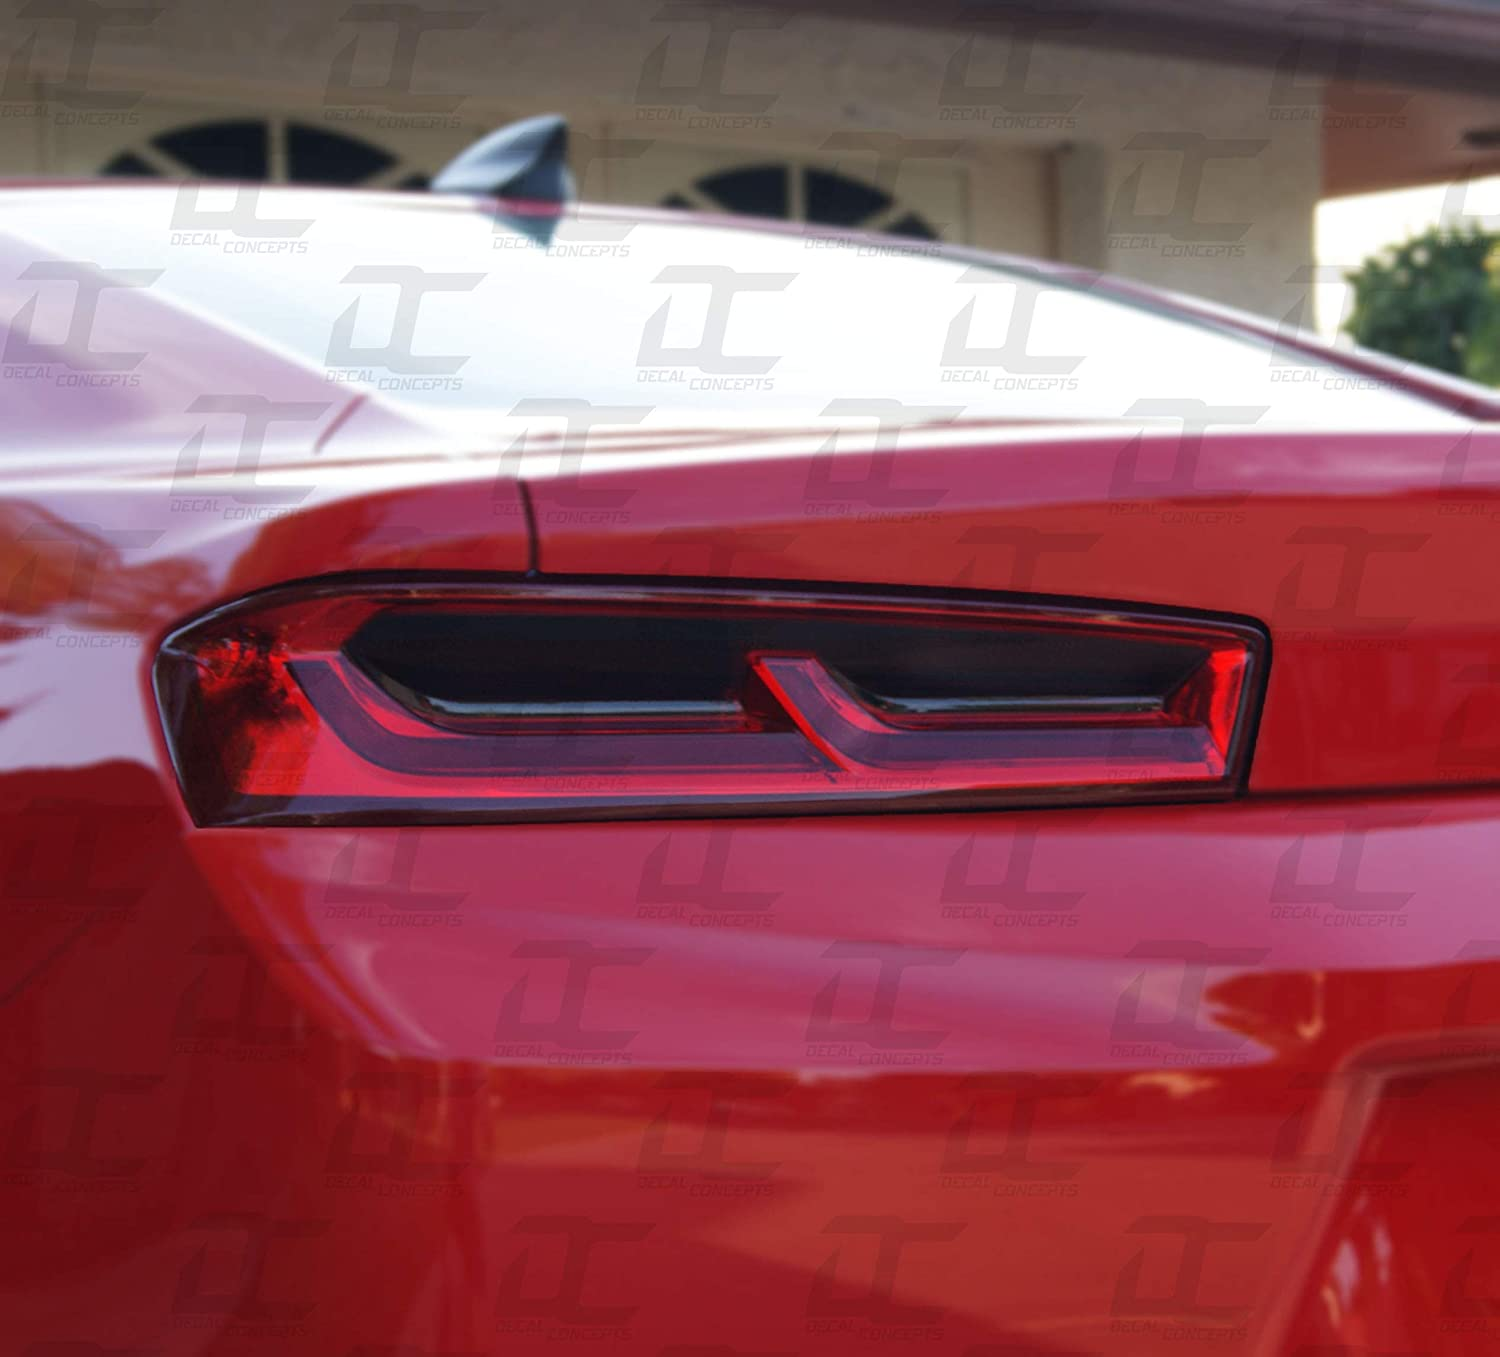 Camaro Tail light Smoked Tint Decal kit 6th GEN (2016-2018) Decal Concepts